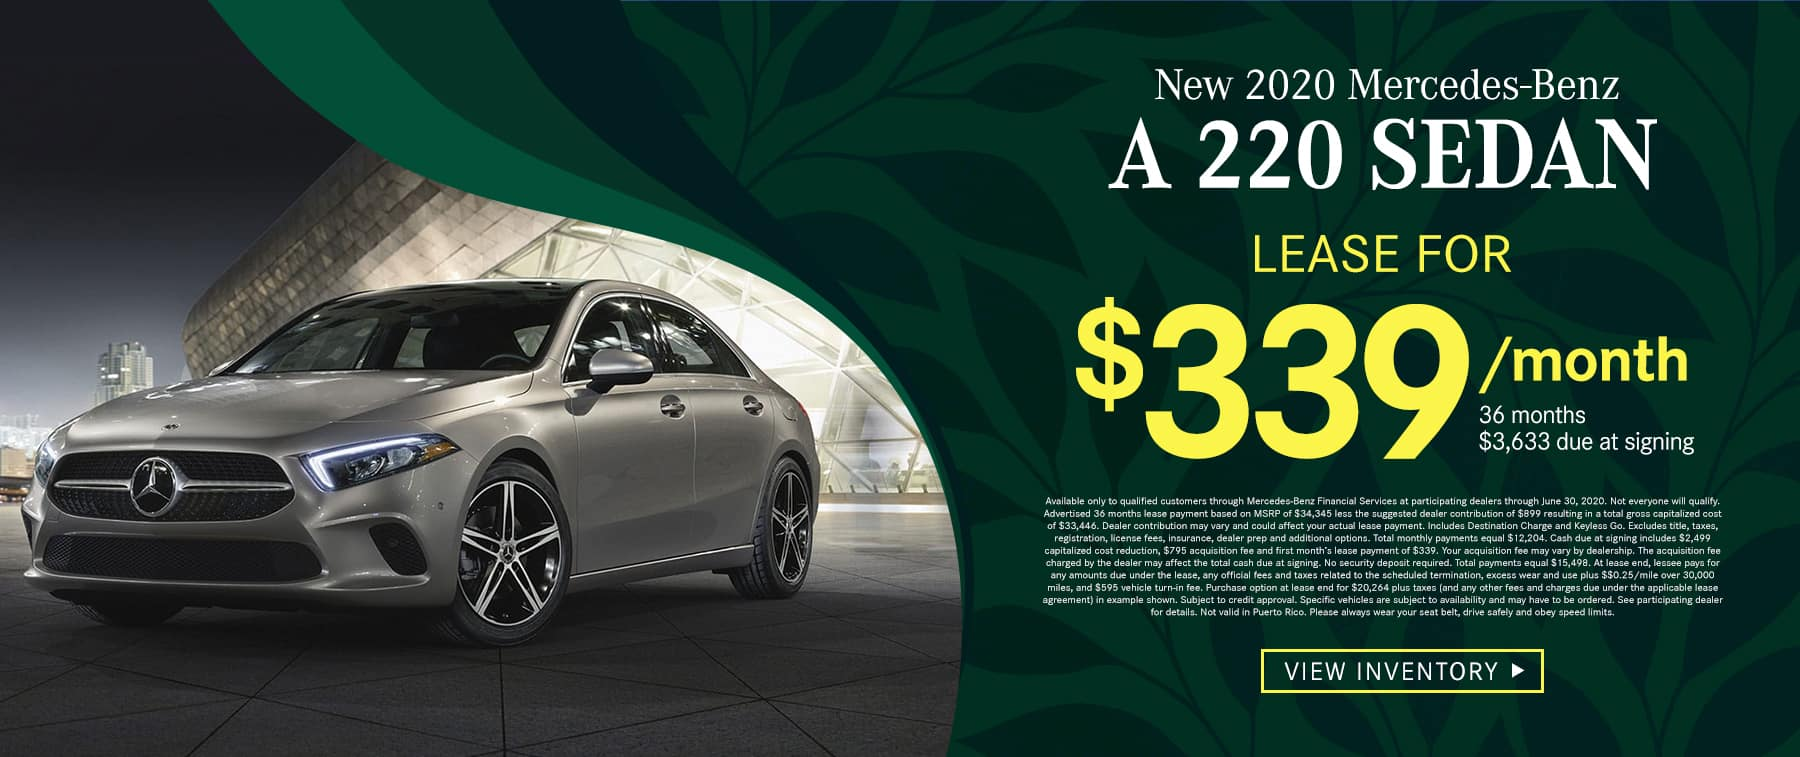 2020 A 220 Sedan $339 Per Month for 36 Months/10k Miles $3,633 Due at Signing